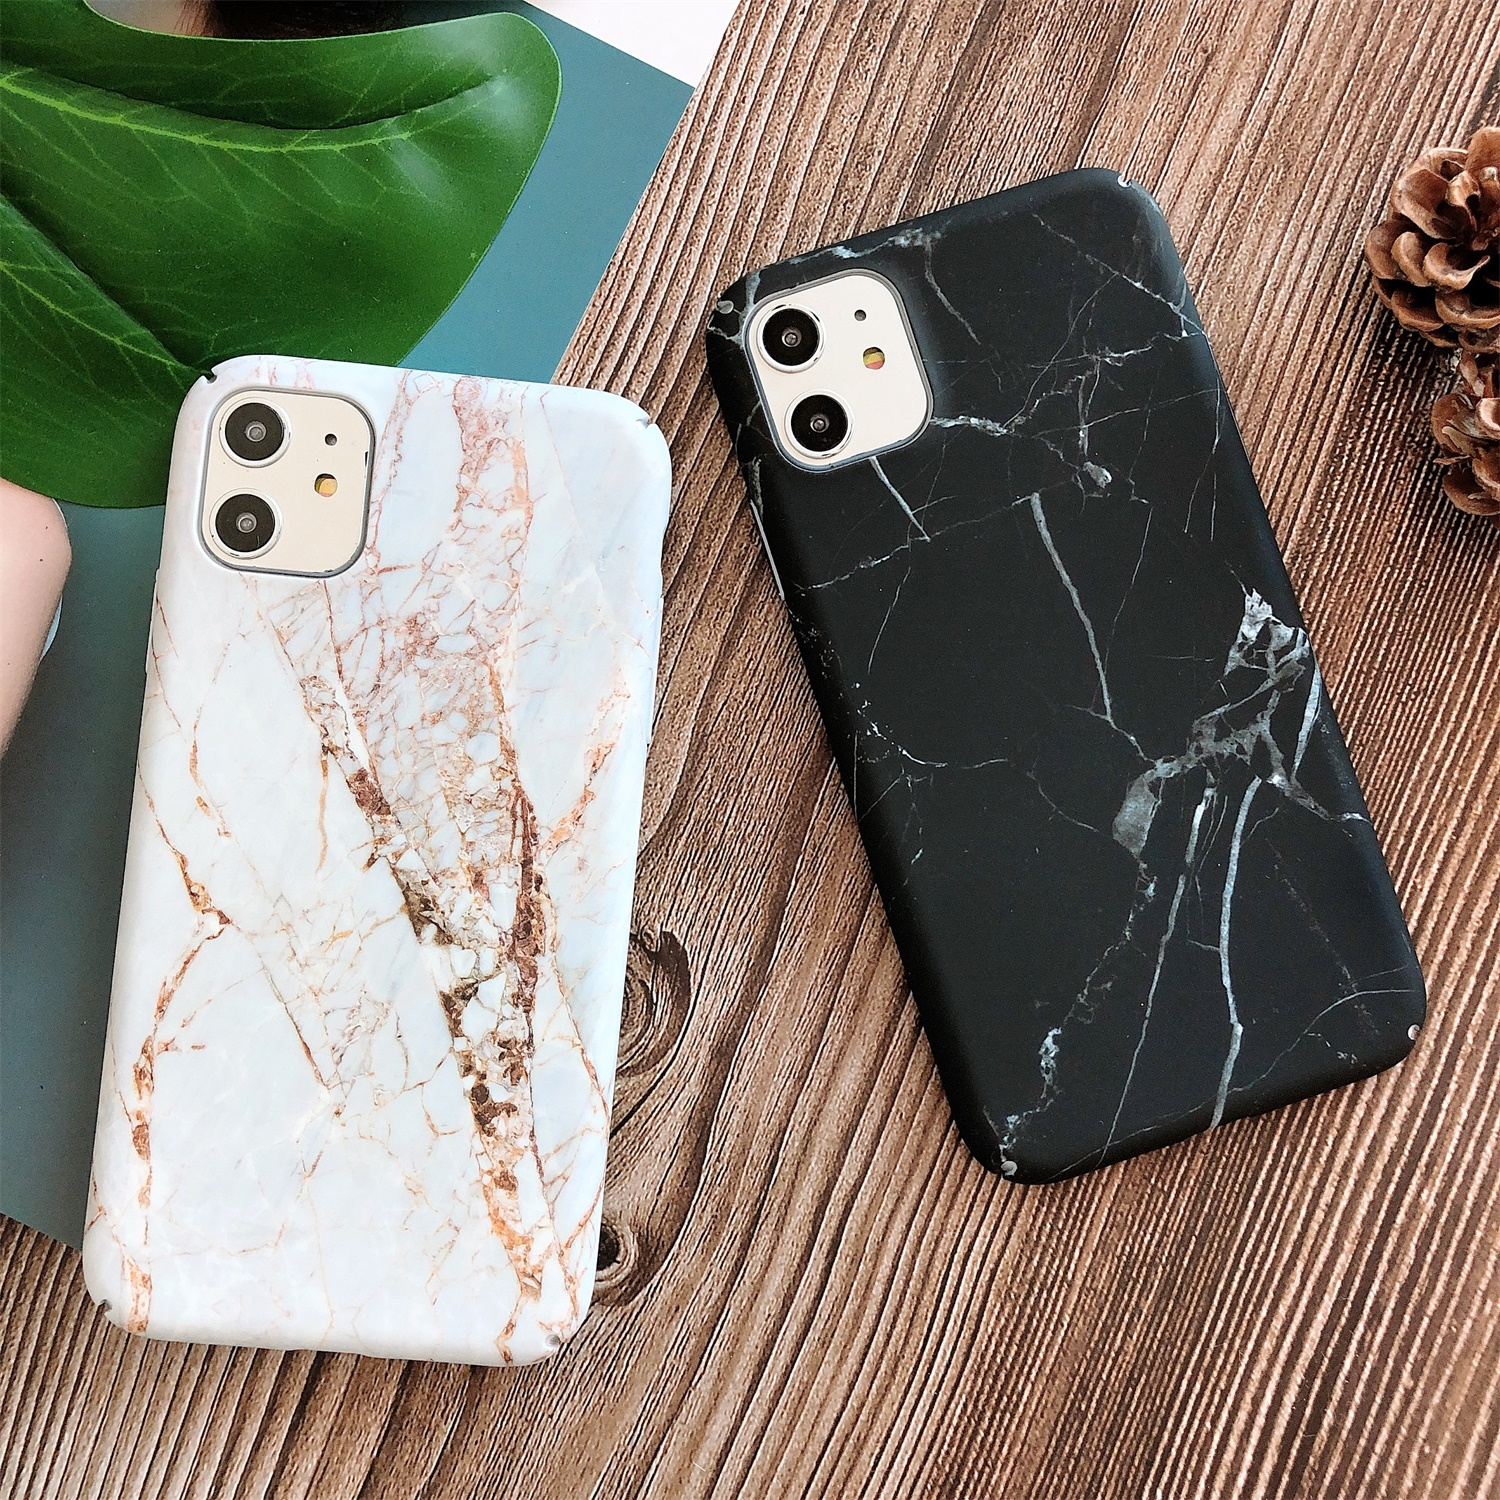 LISCN PC Marble Phone Case For IPhone XR 6 6sPlus 11 11Pro Max 7Plus 8Plus Xs Max 7 8 X Xs PC Anti-fall Protect Phone Case